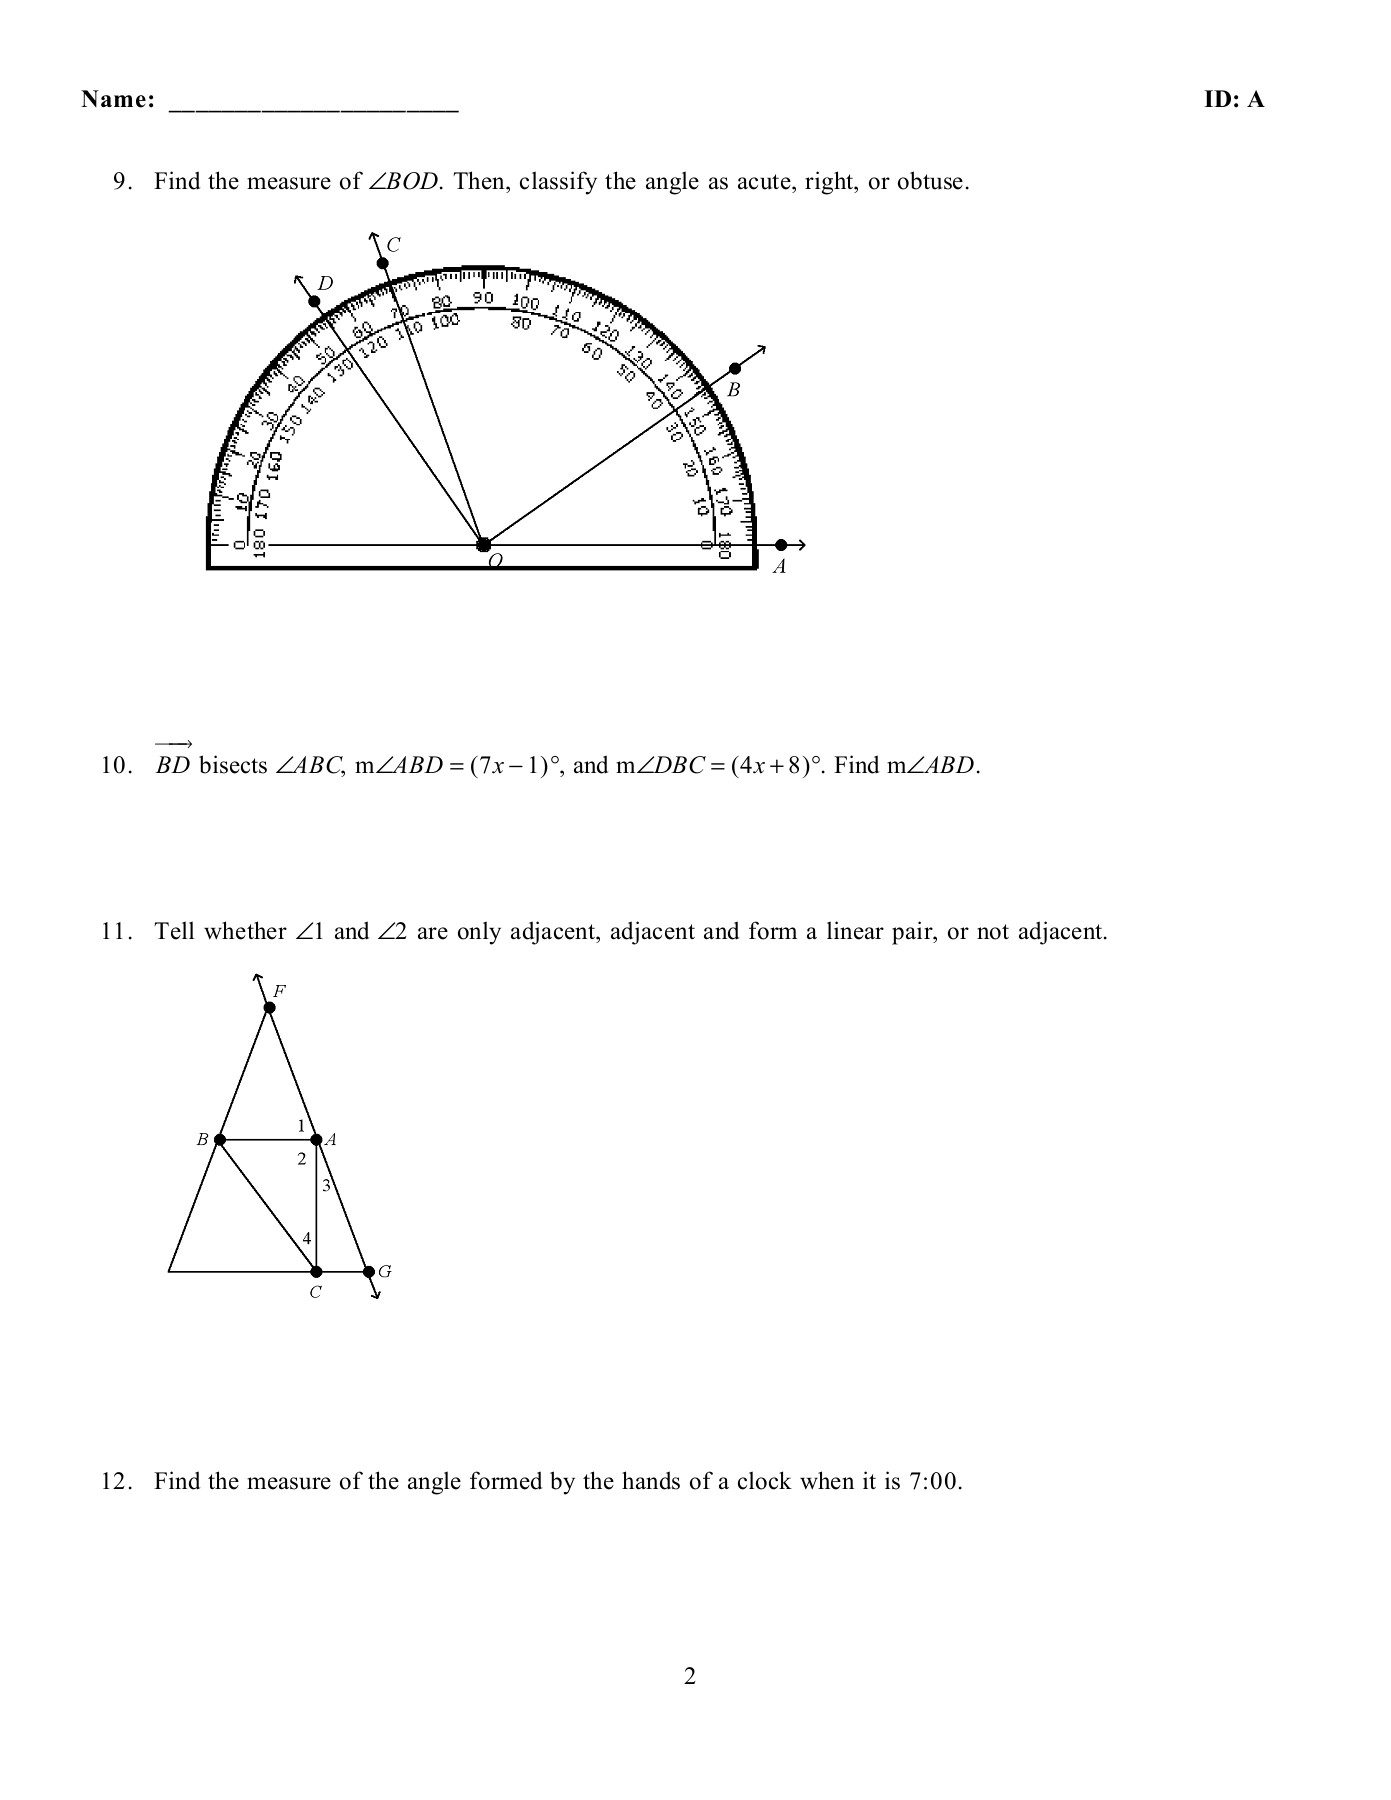 Wiring Diagram Database In Which Diagram Do Angles 1 And